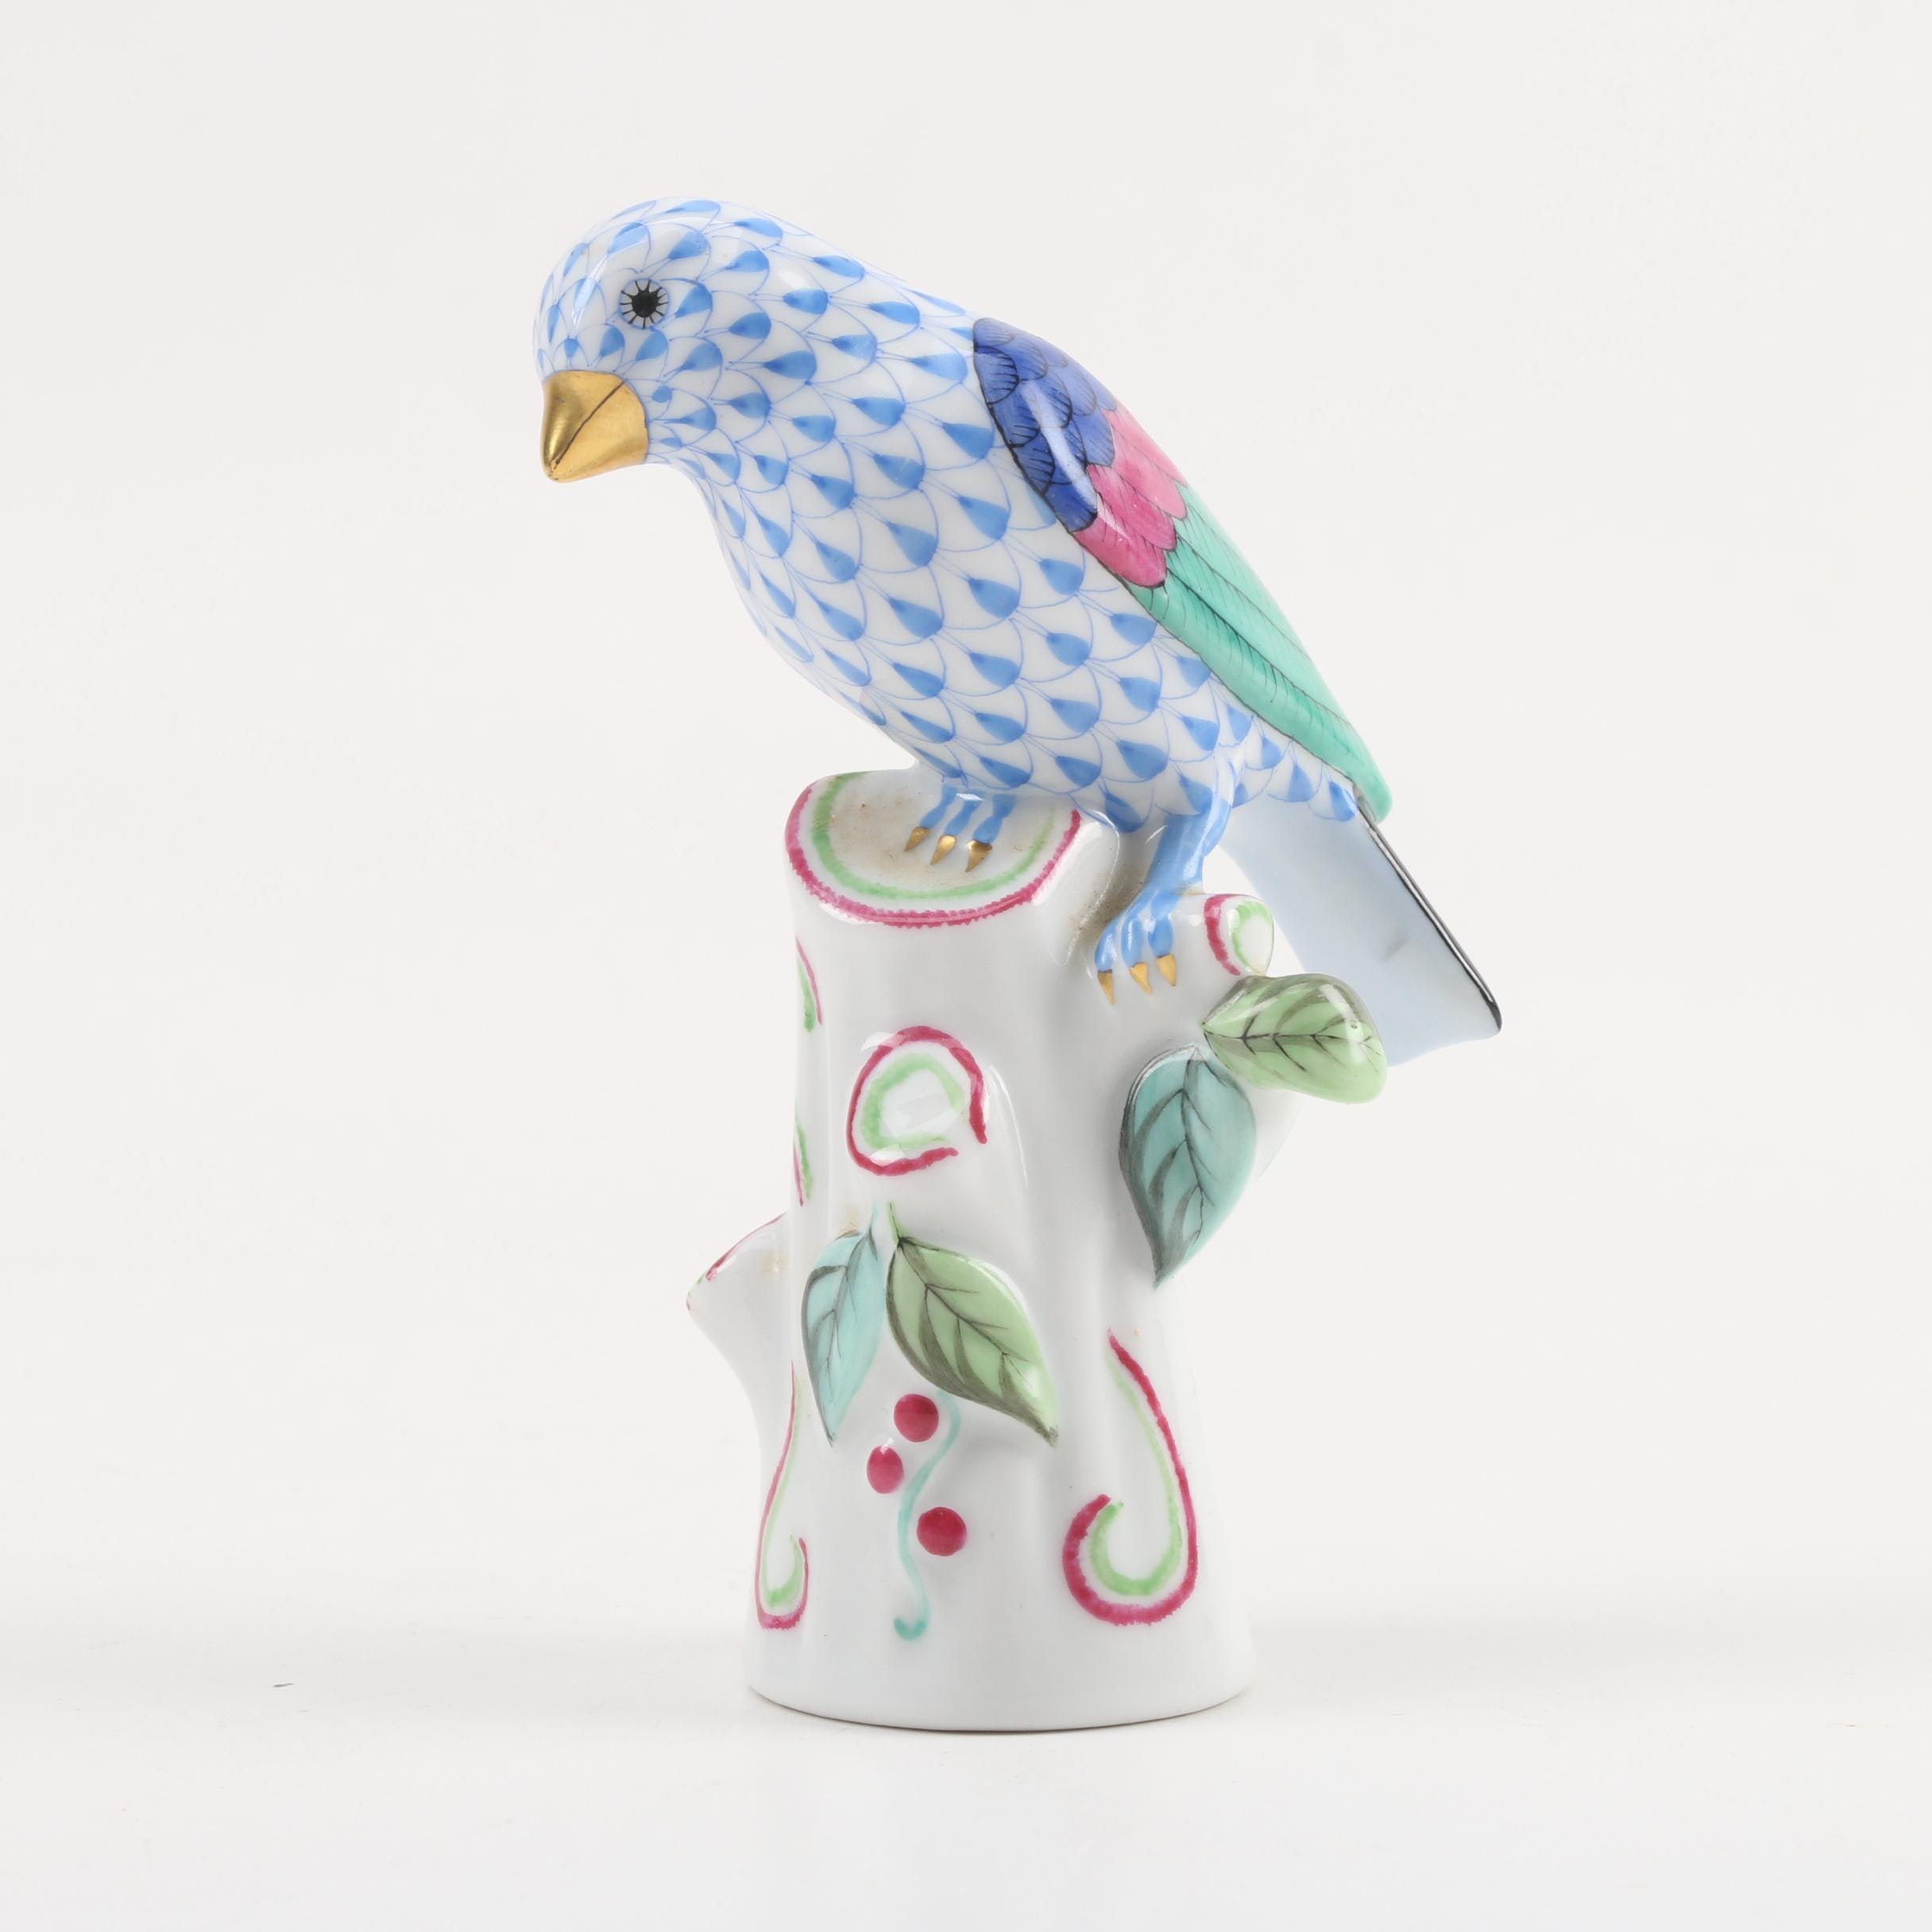 Herend Hungary Hand-Painted Perched Bird Porcelain Figurine